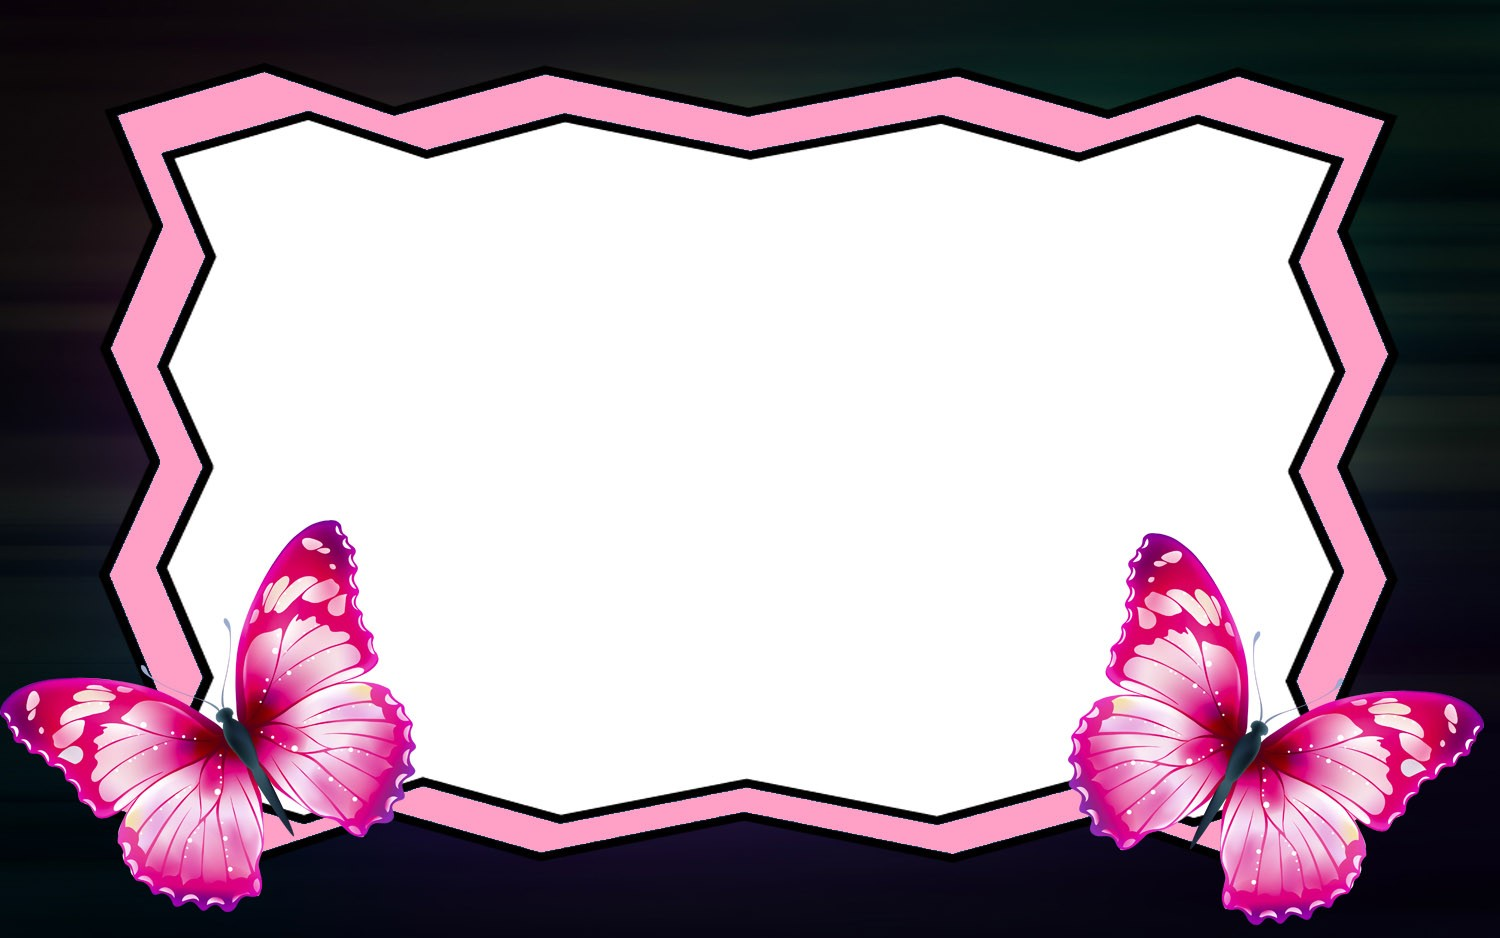 Butterfly Party Invitation Ideas And Free Invitation Templates Invitations Online